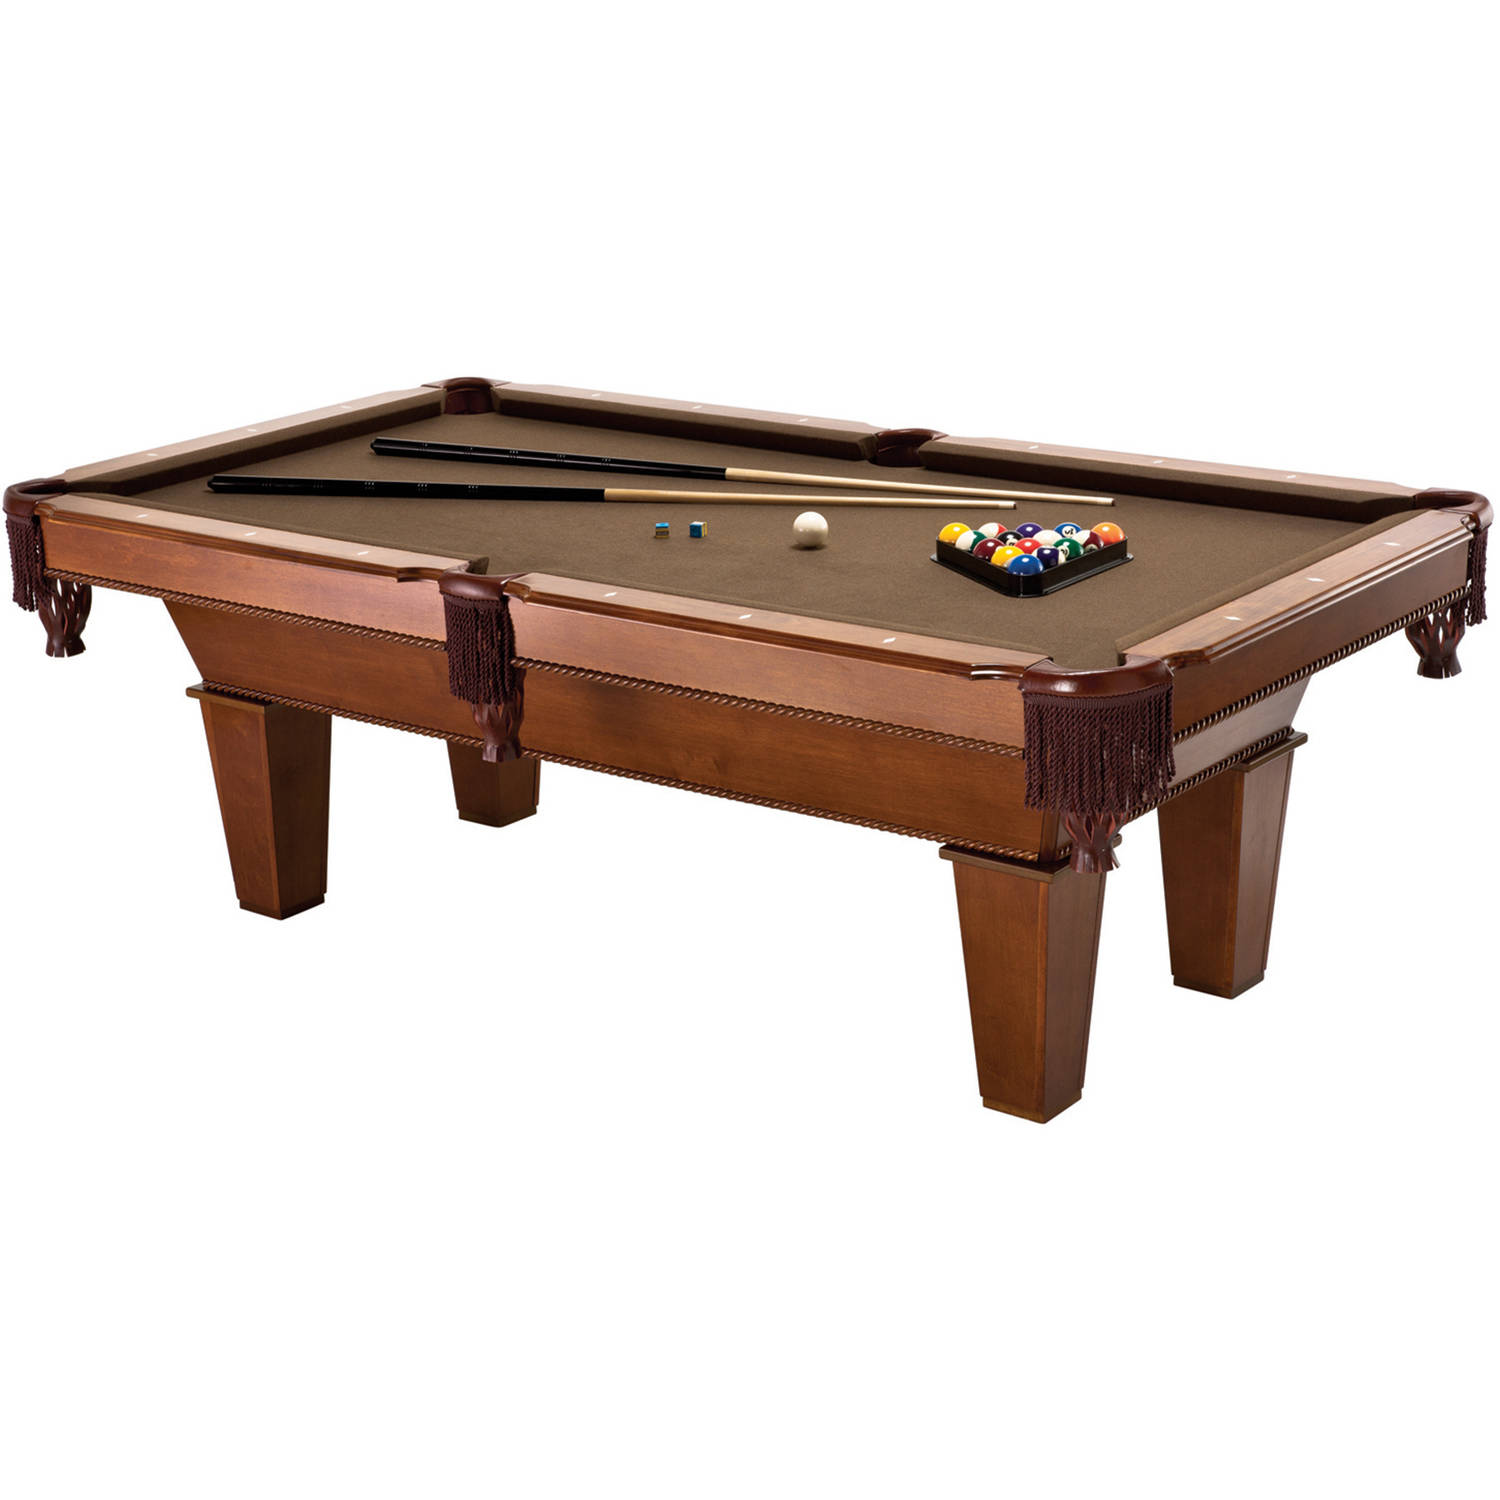 Fat Cat 7' Frisco Billiard Table W/Play Pkg